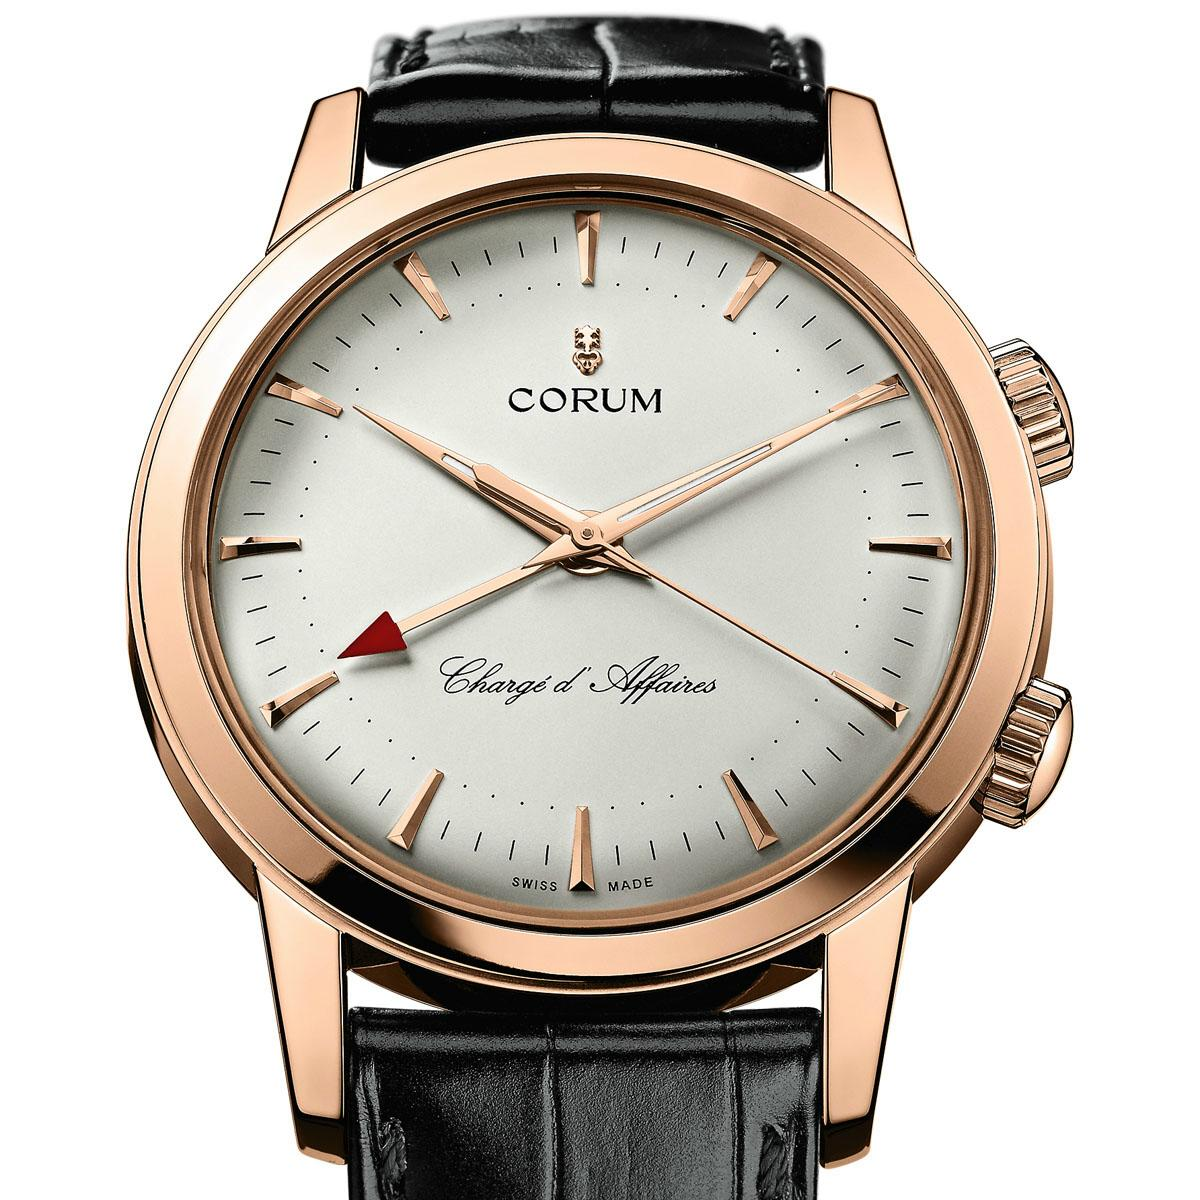 corum - News : Corum Heritage Vintage Chargé d'Affaires Corumcharge1